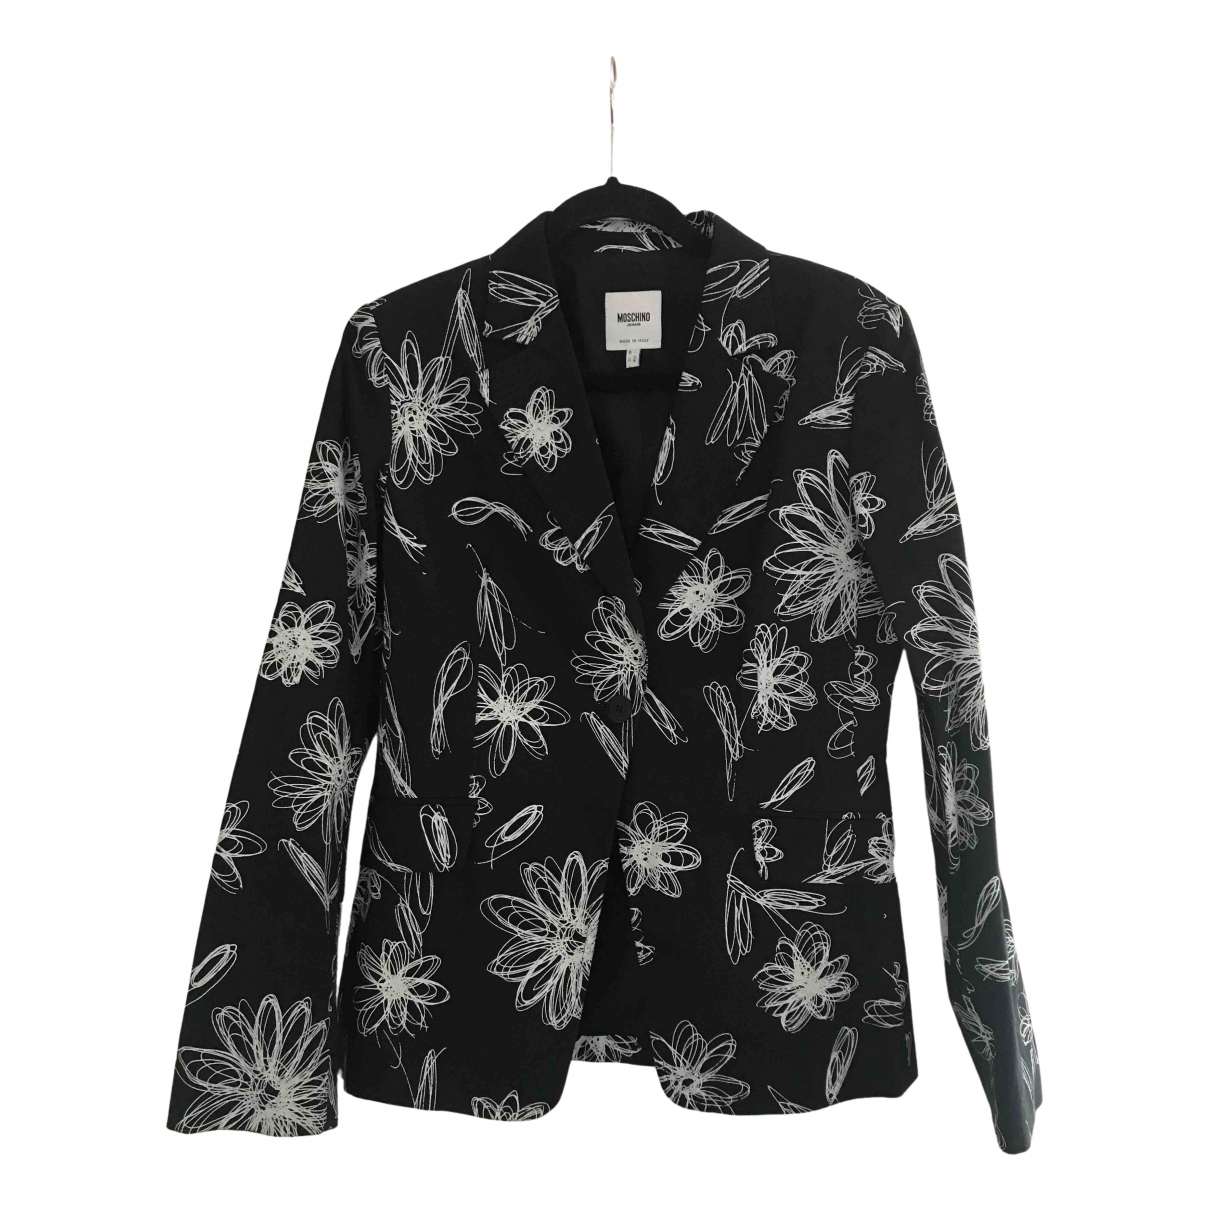 Moschino Cheap And Chic \N Black Cotton jacket for Women 16 UK